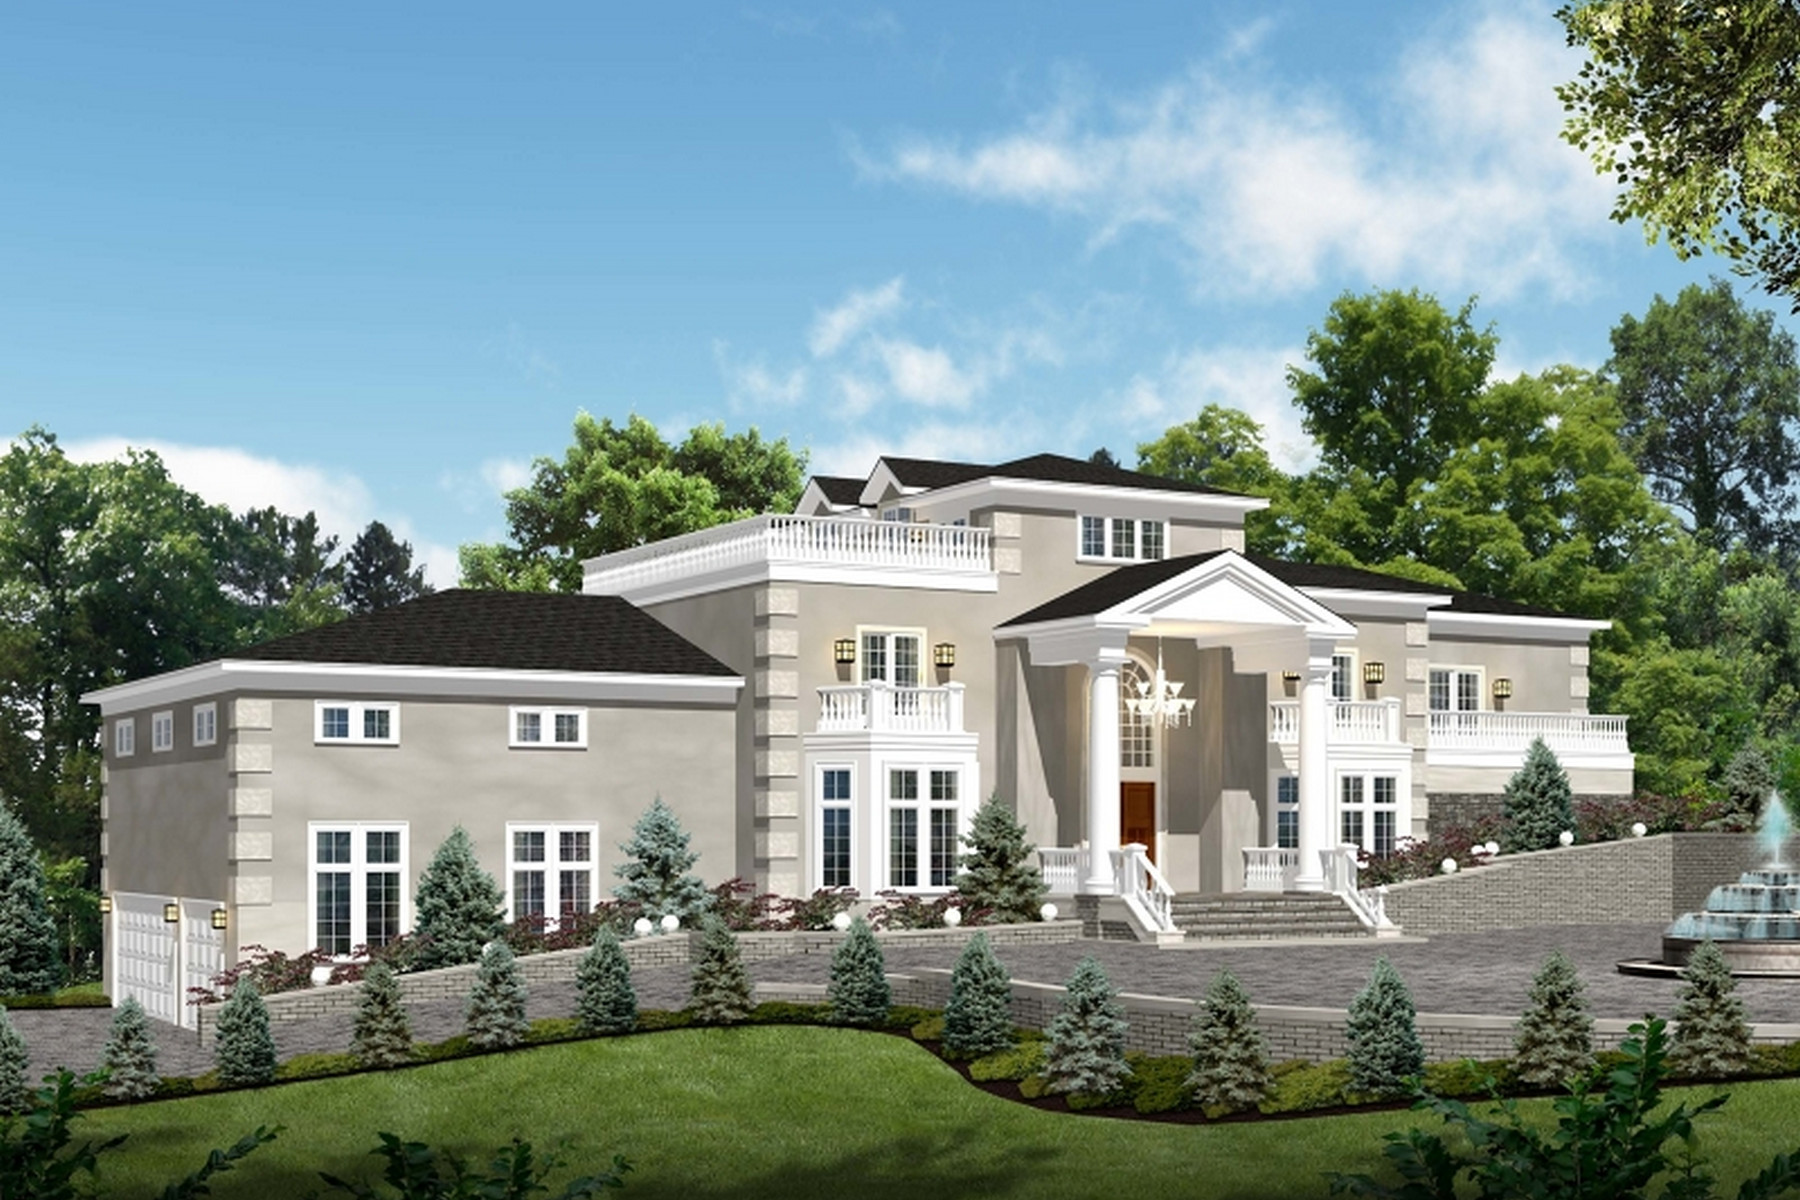 Single Family Homes pour l Vente à Masterful New Construction 57 Glen Avenue, West Orange, New Jersey 07052 États-Unis